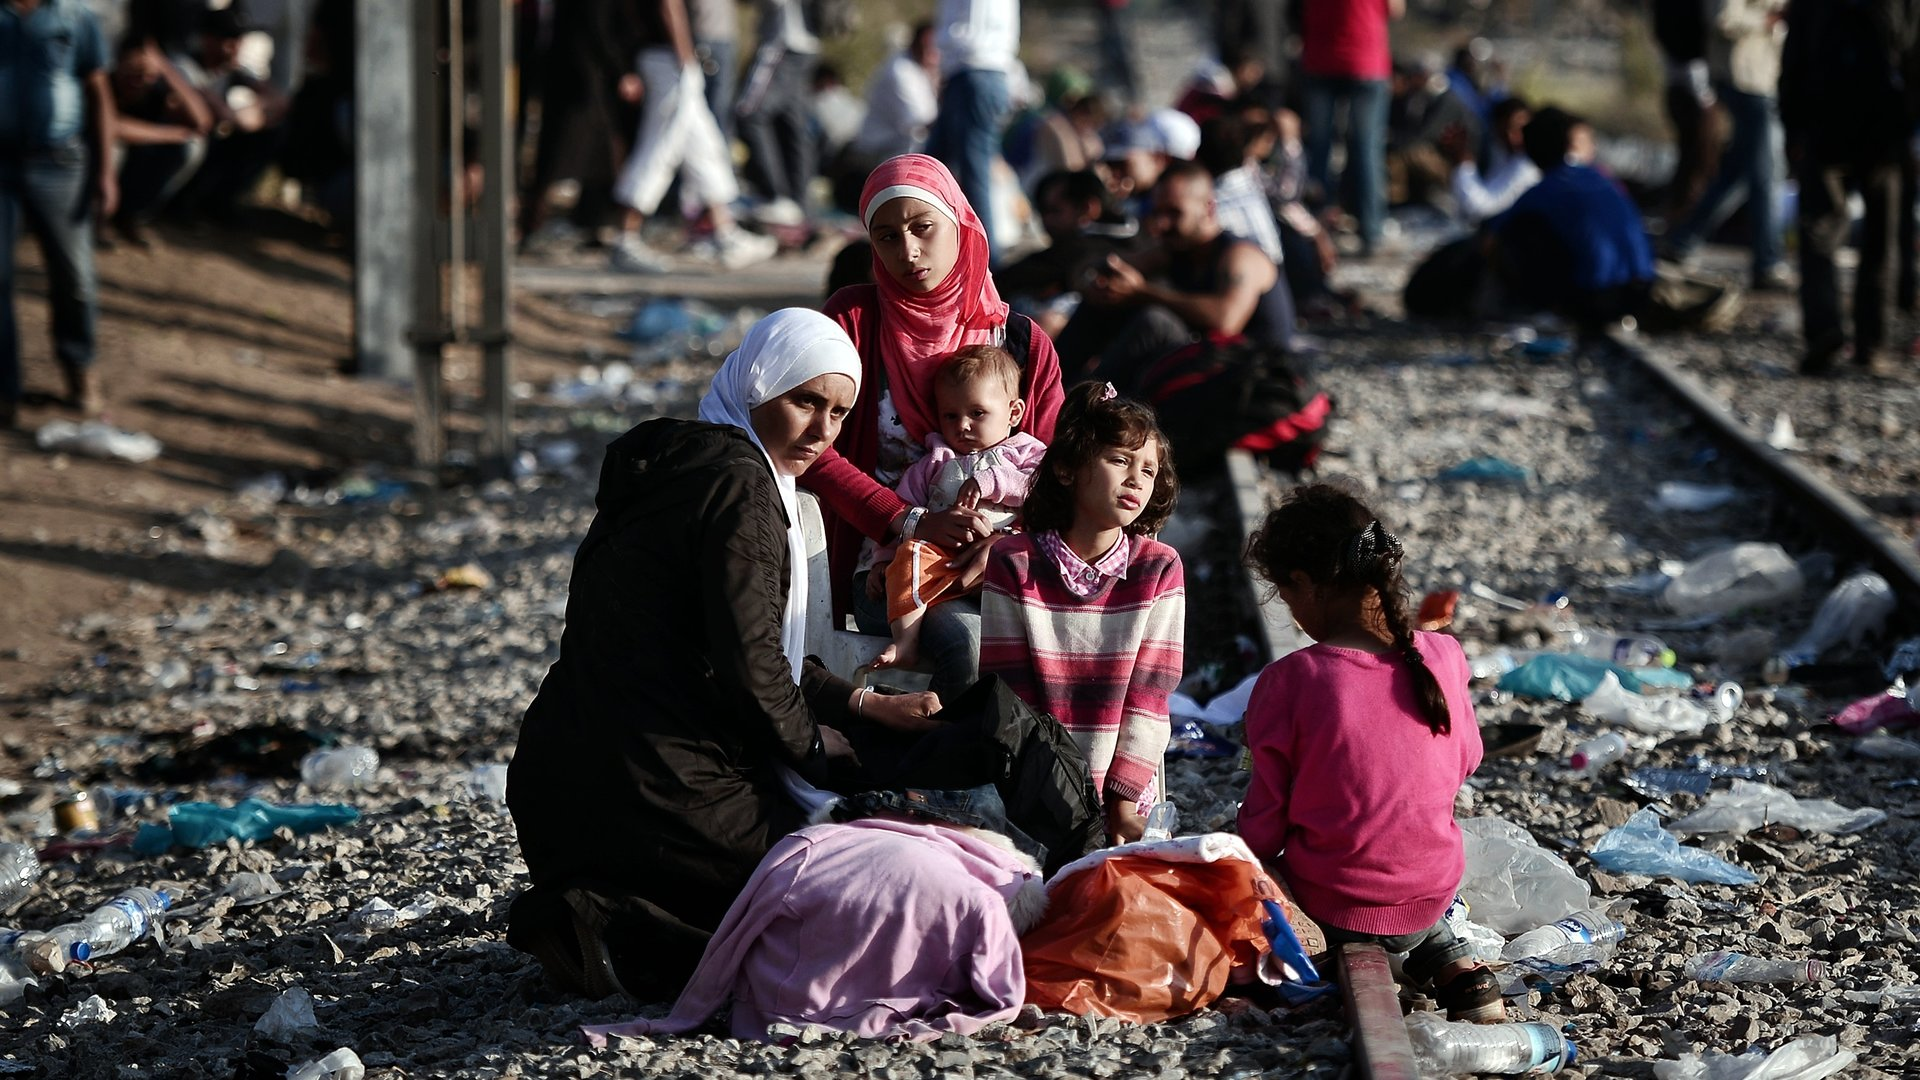 Syrian refugees on a train track